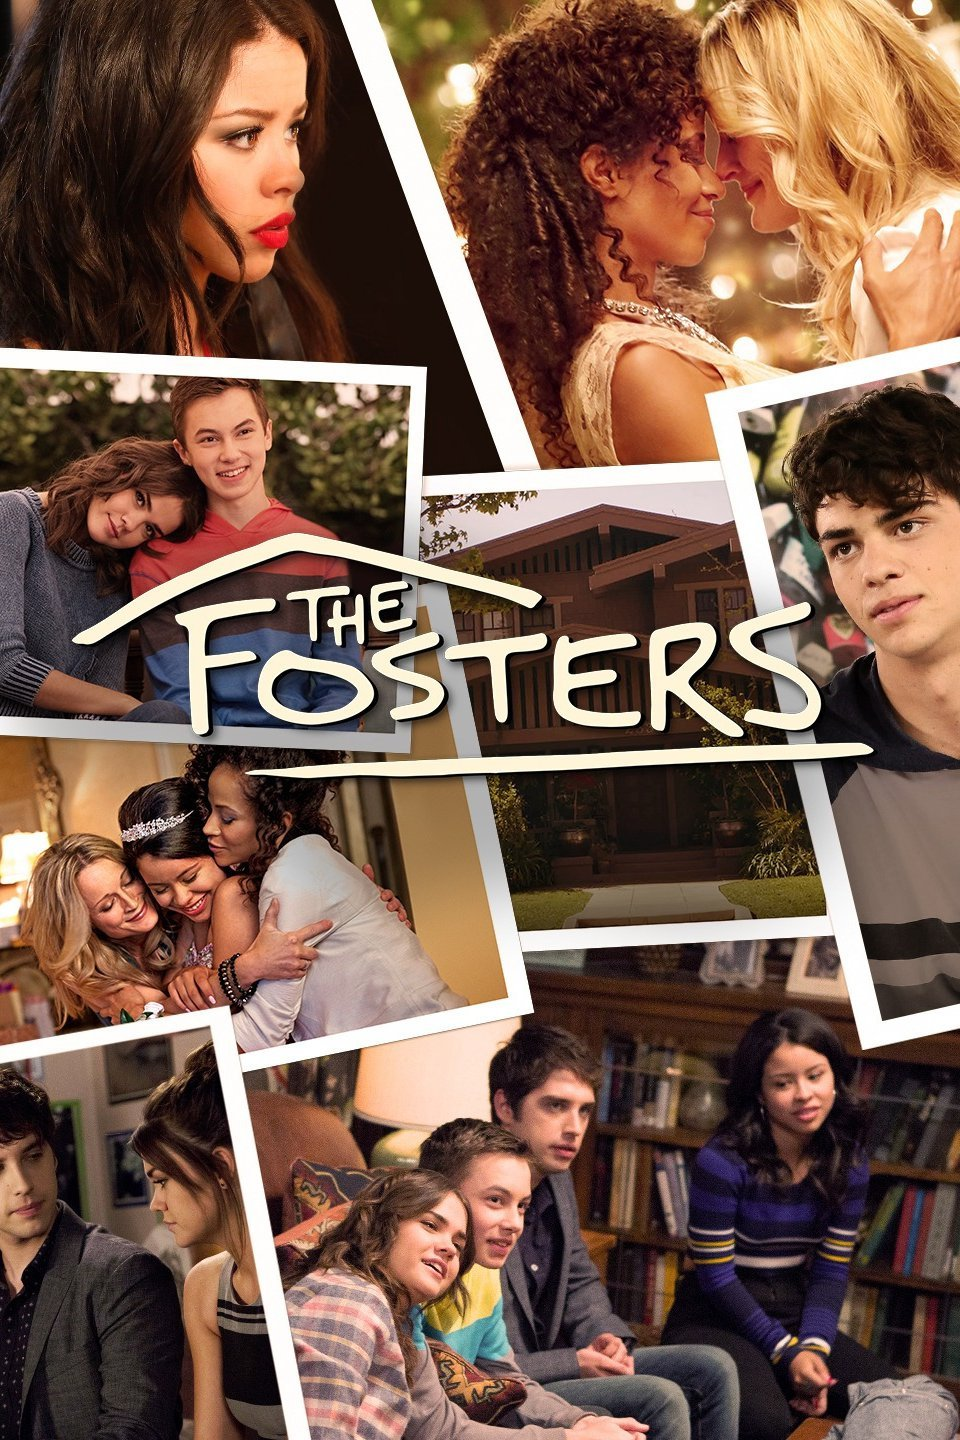 The Fosters Season 4 Episode 20 Download HDTV Micromkv